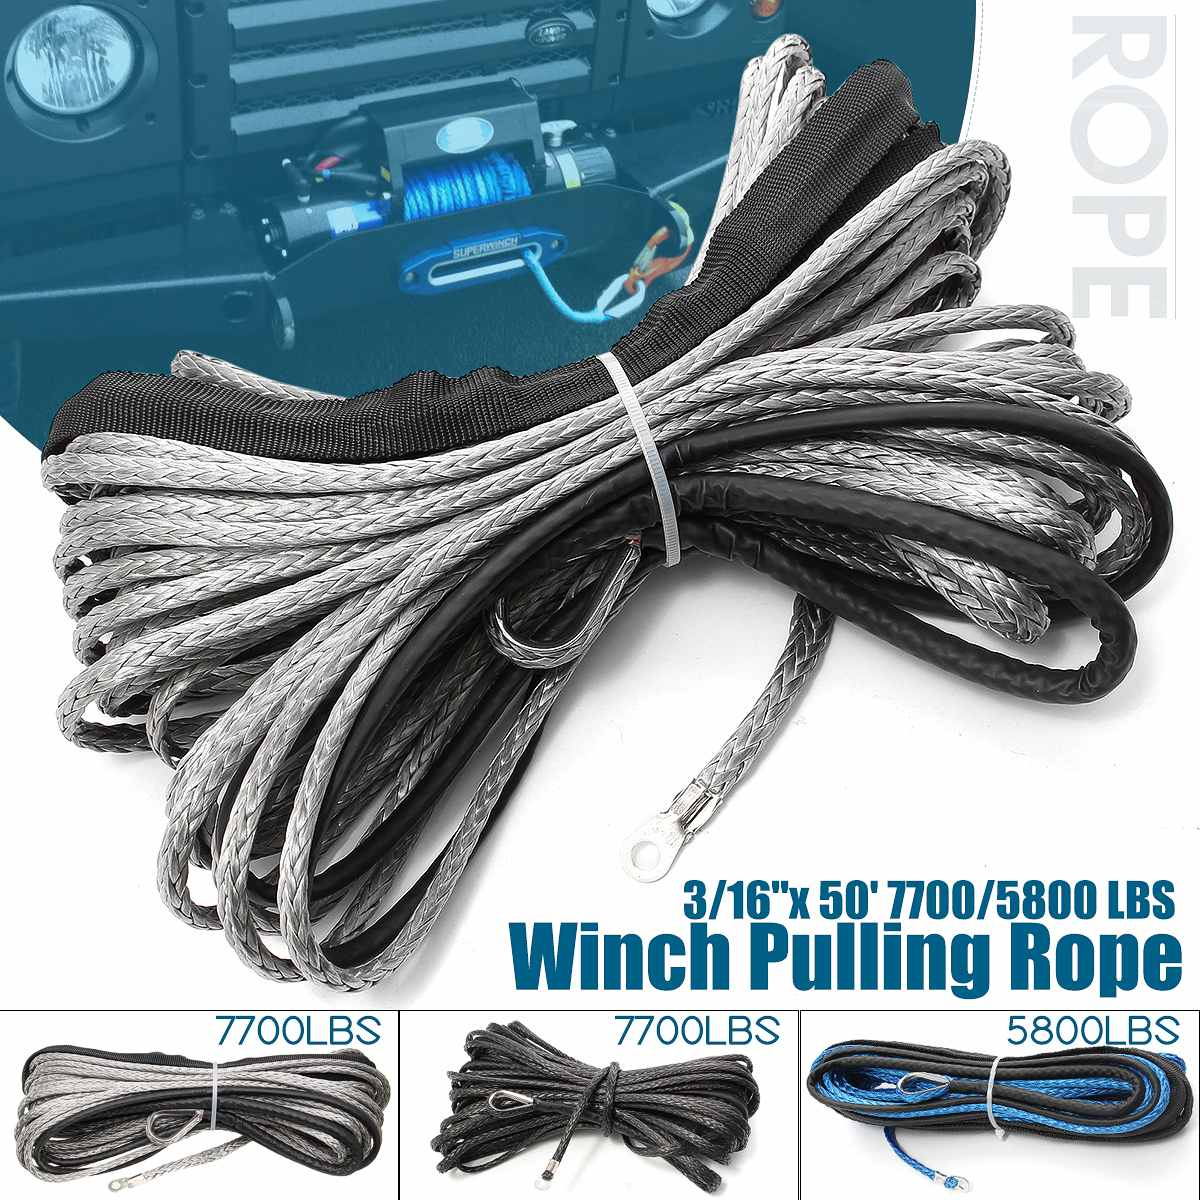 NEW 15m 7700 Lbs Winch Rope String Line Cable With Sheath Synthetic Towing Rope Car Wash Maintenance String For ATV UTV Off-Road